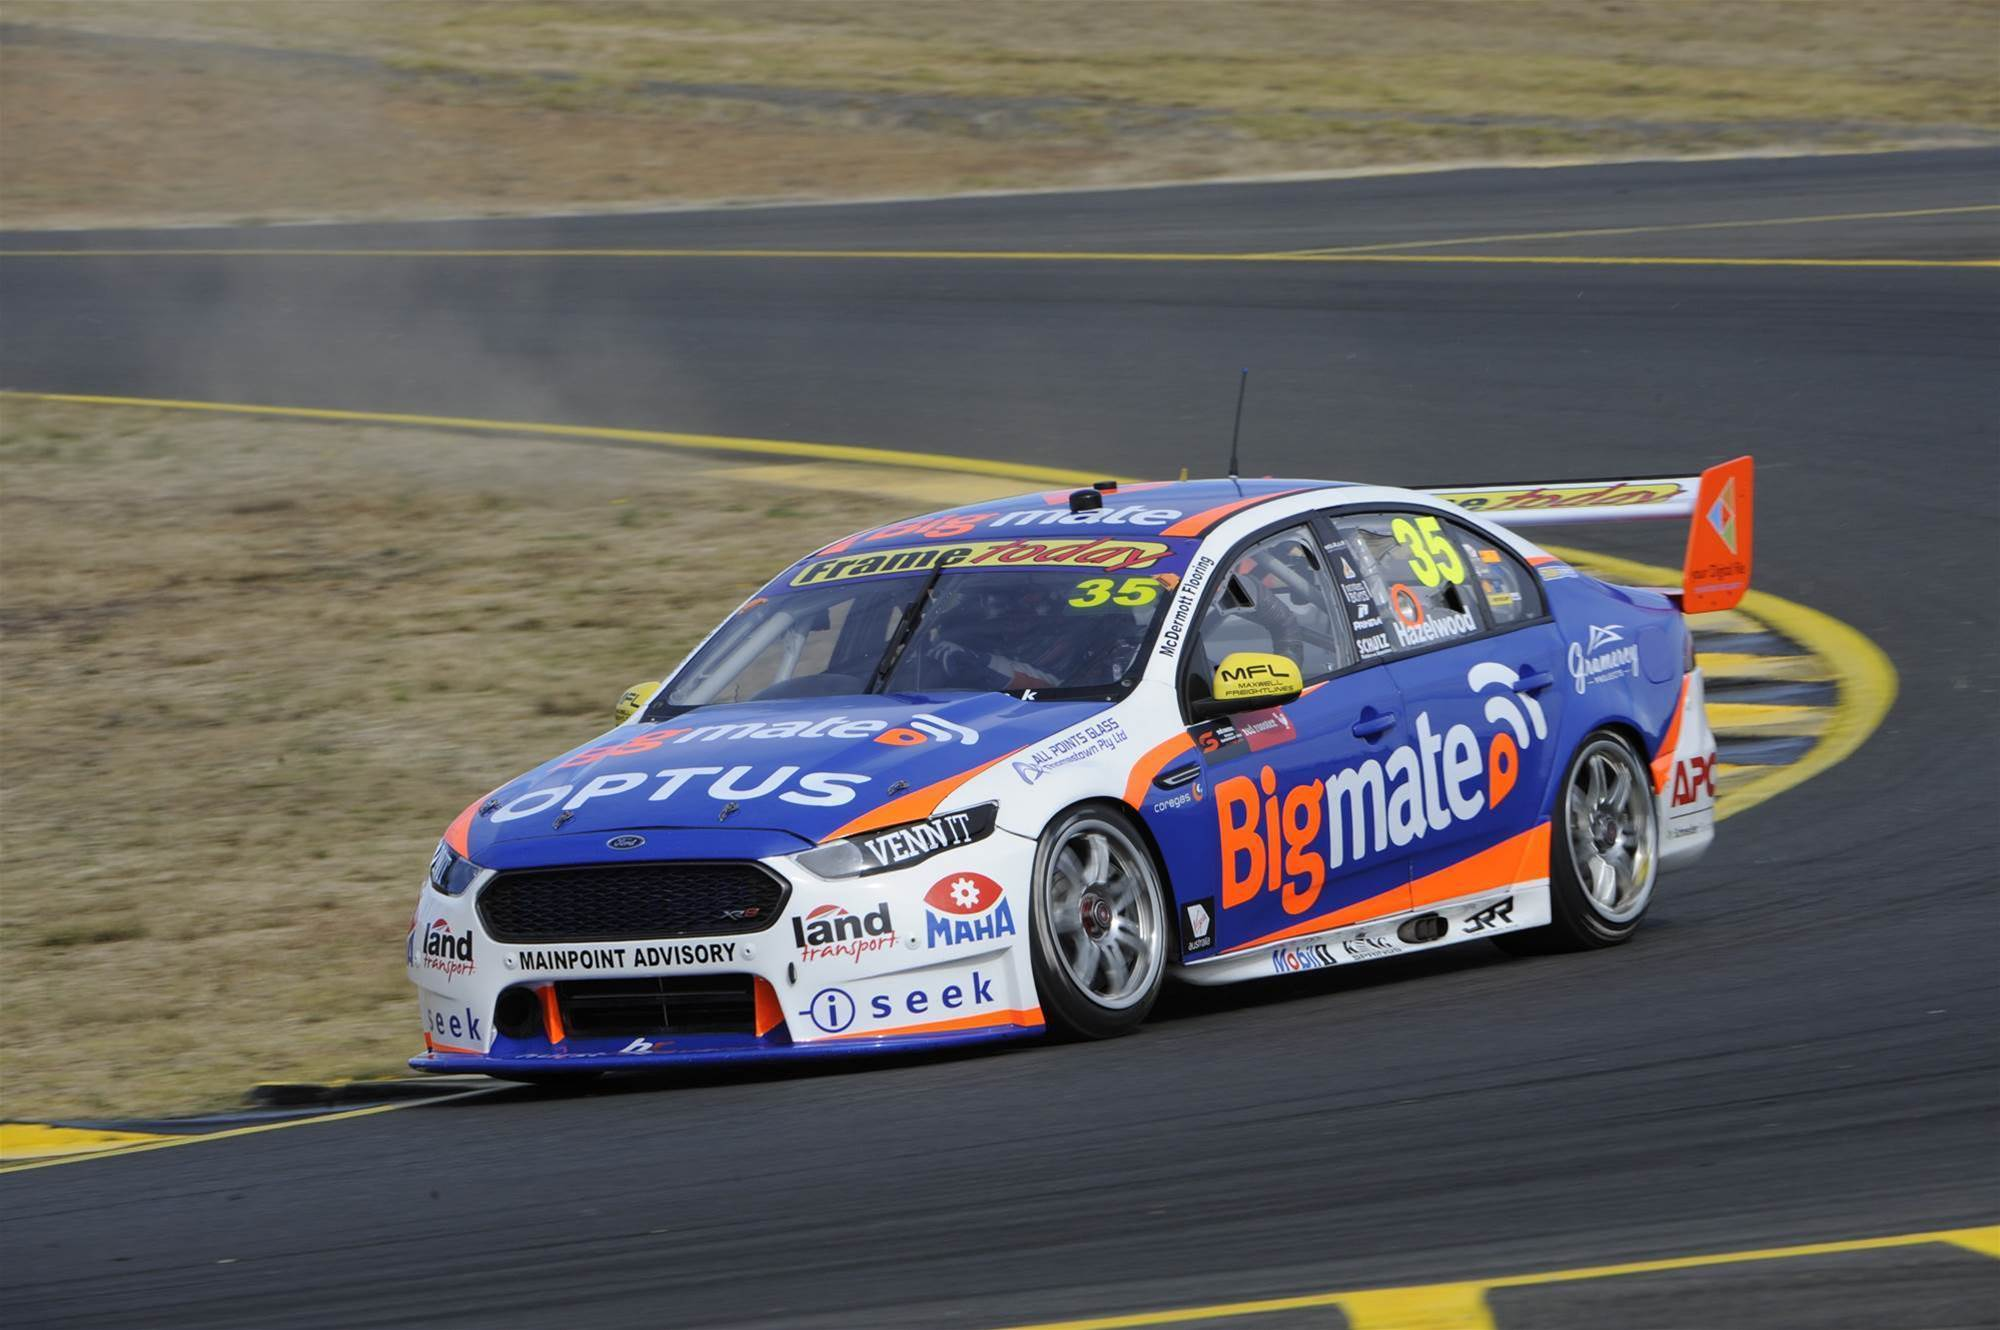 Ford Supercars rookie switches to Holden